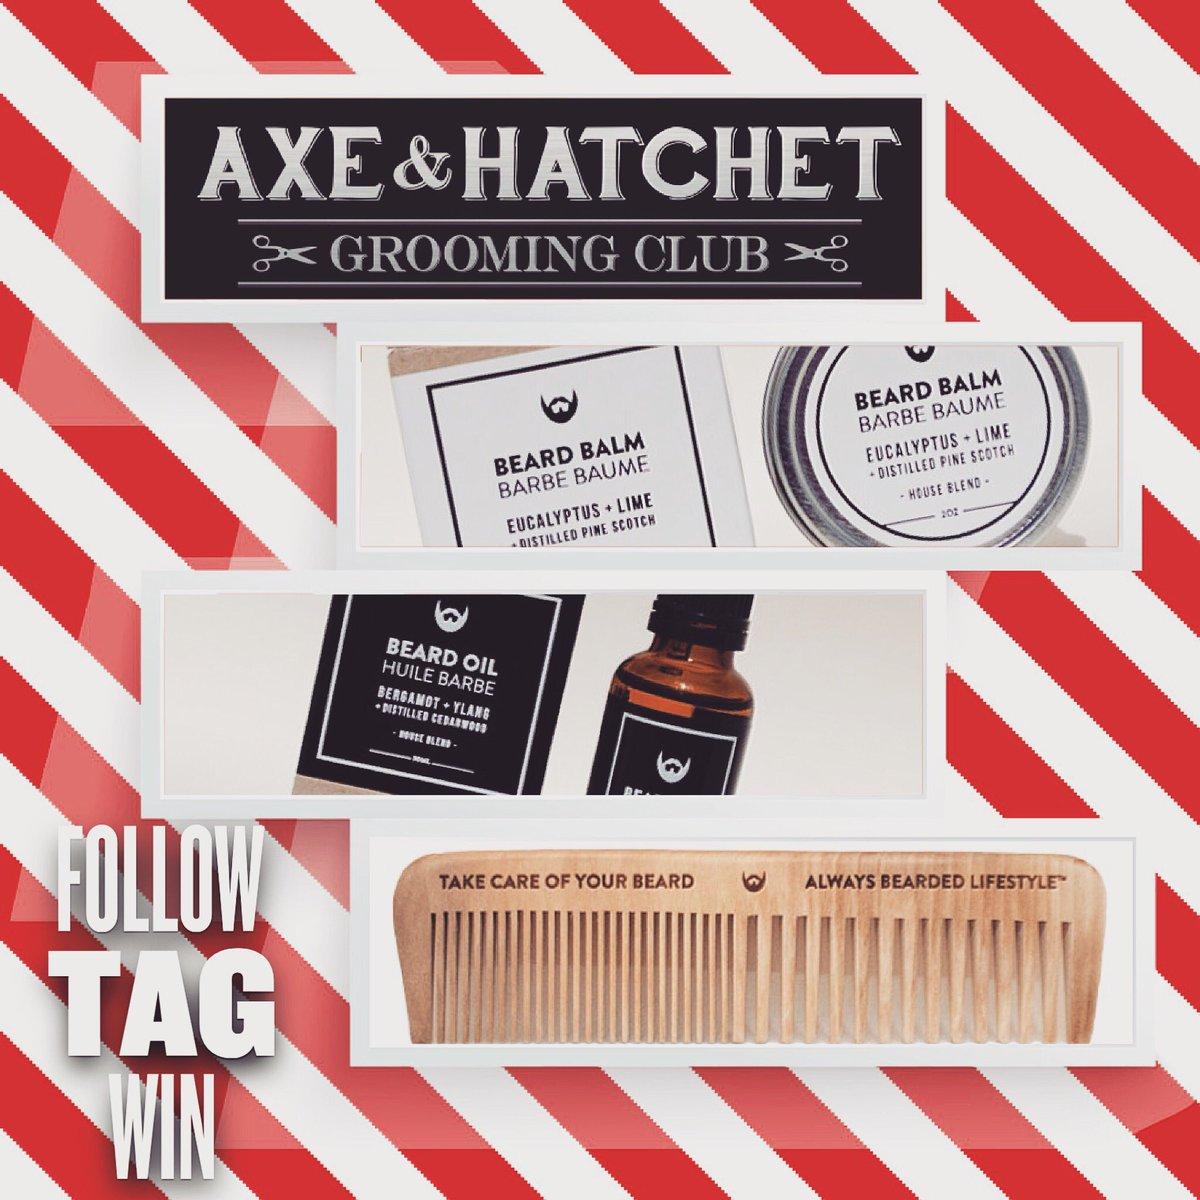 Want to #win the ultimate grooming prize pack? Follow & RT to enter! Details at: https://t.co/9BXI7I7BY0 https://t.co/Kmmcd8naVQ